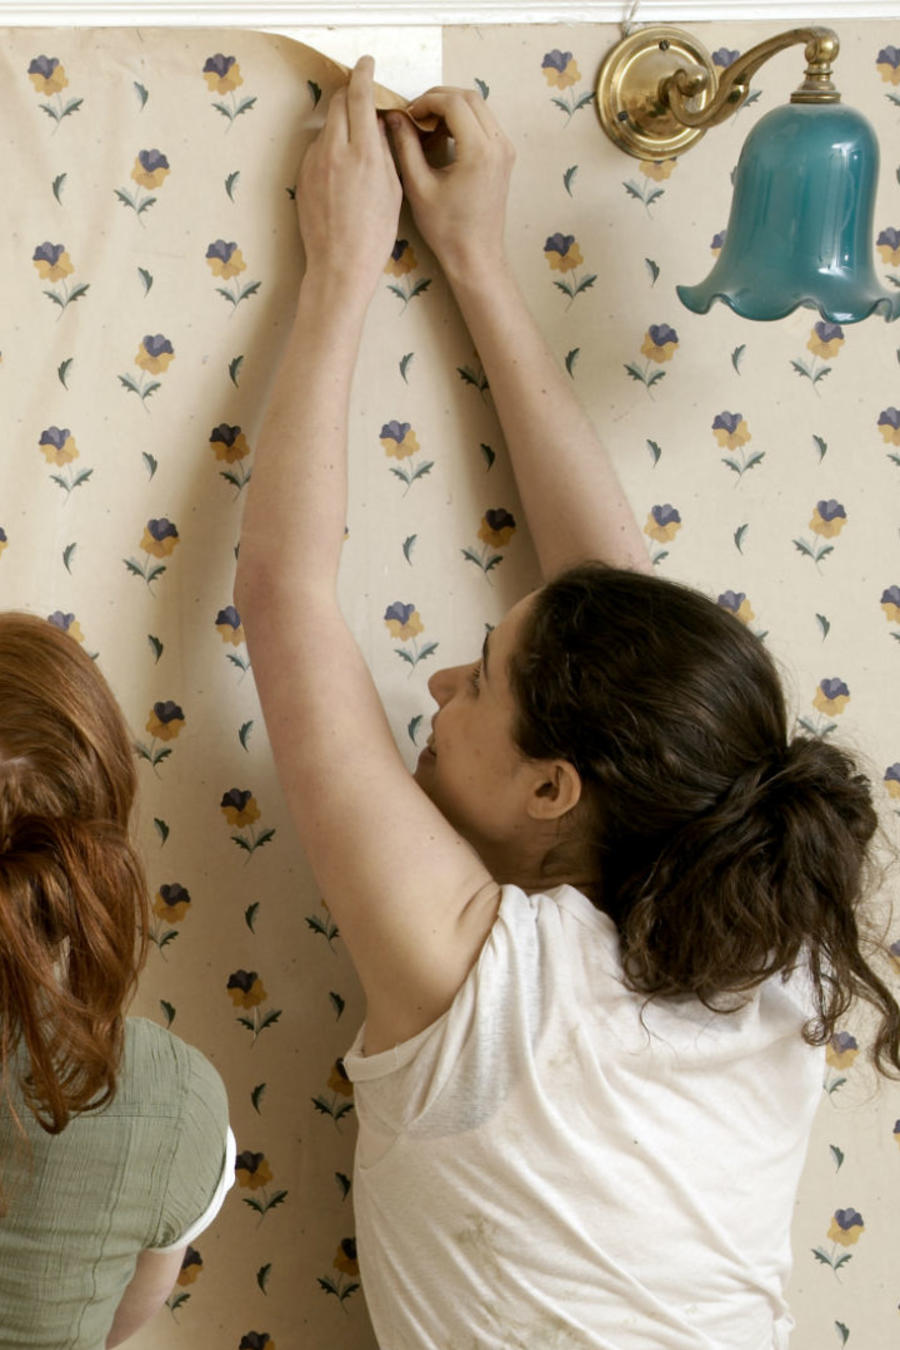 Mujeres decorando la pared